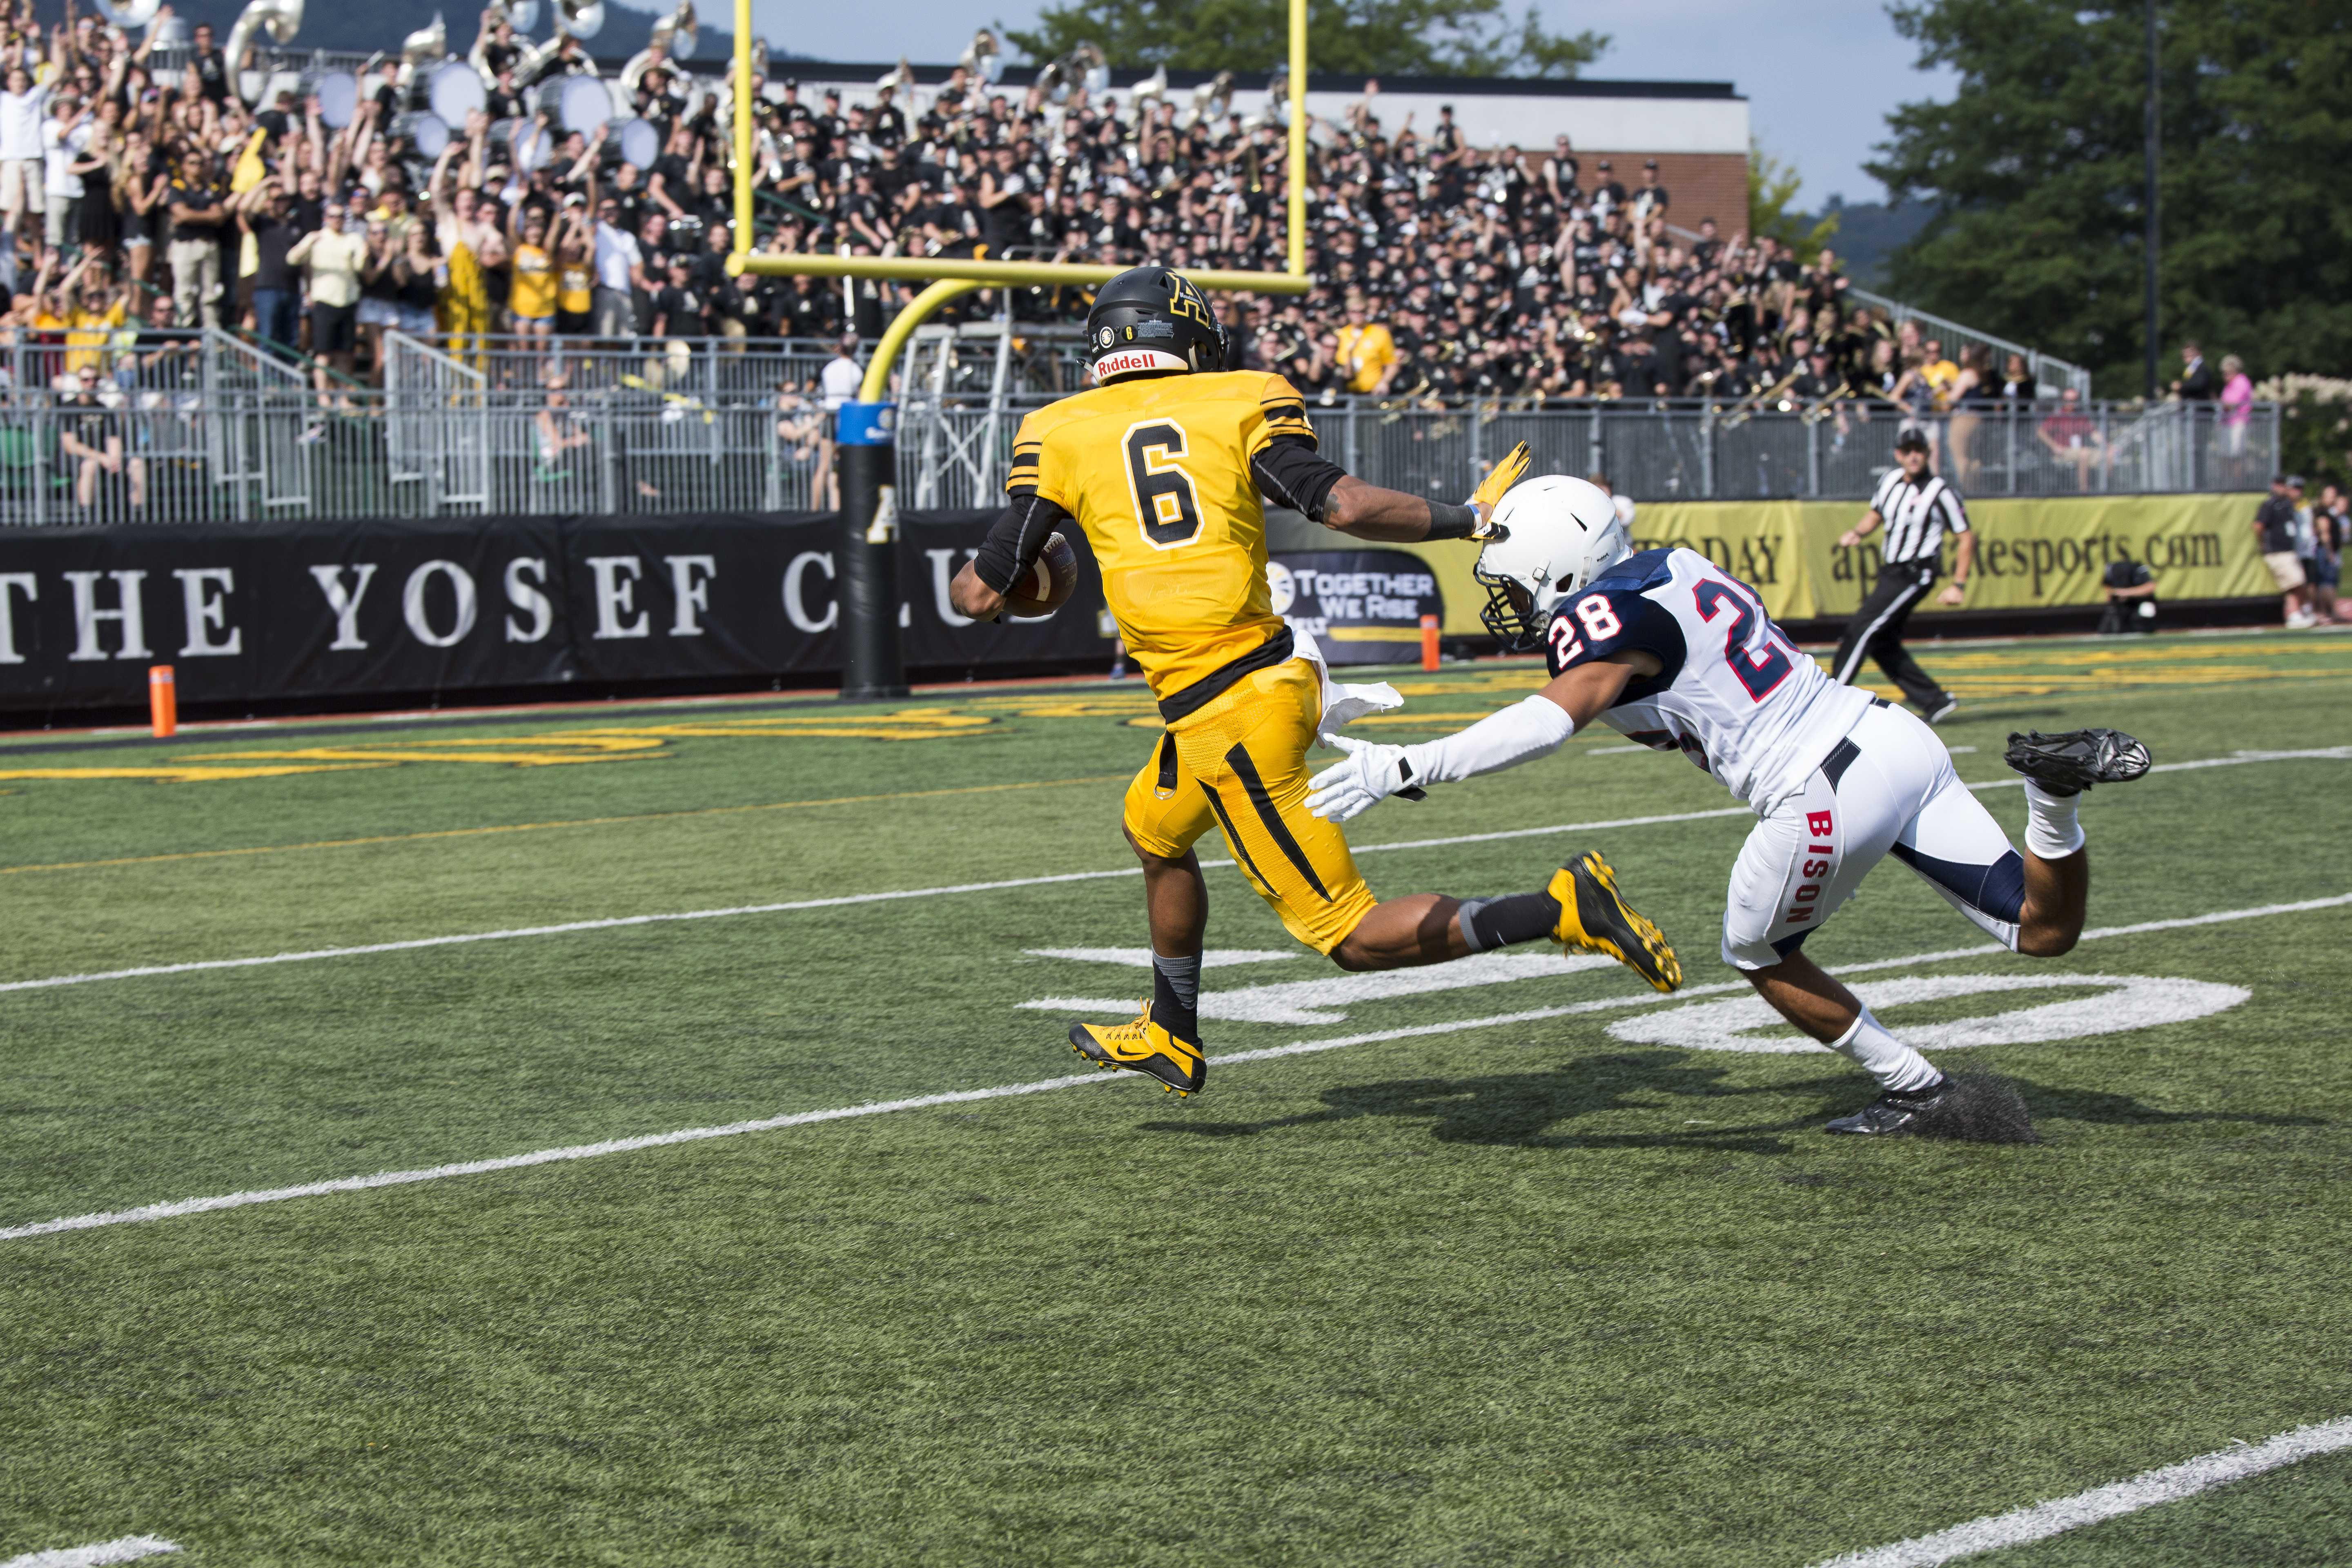 Sophomore receiver Shaedon Meadors breaks free of a tackle en route to a Mountaineer touchdown. App State topped Howard 49-0 in their season opener.